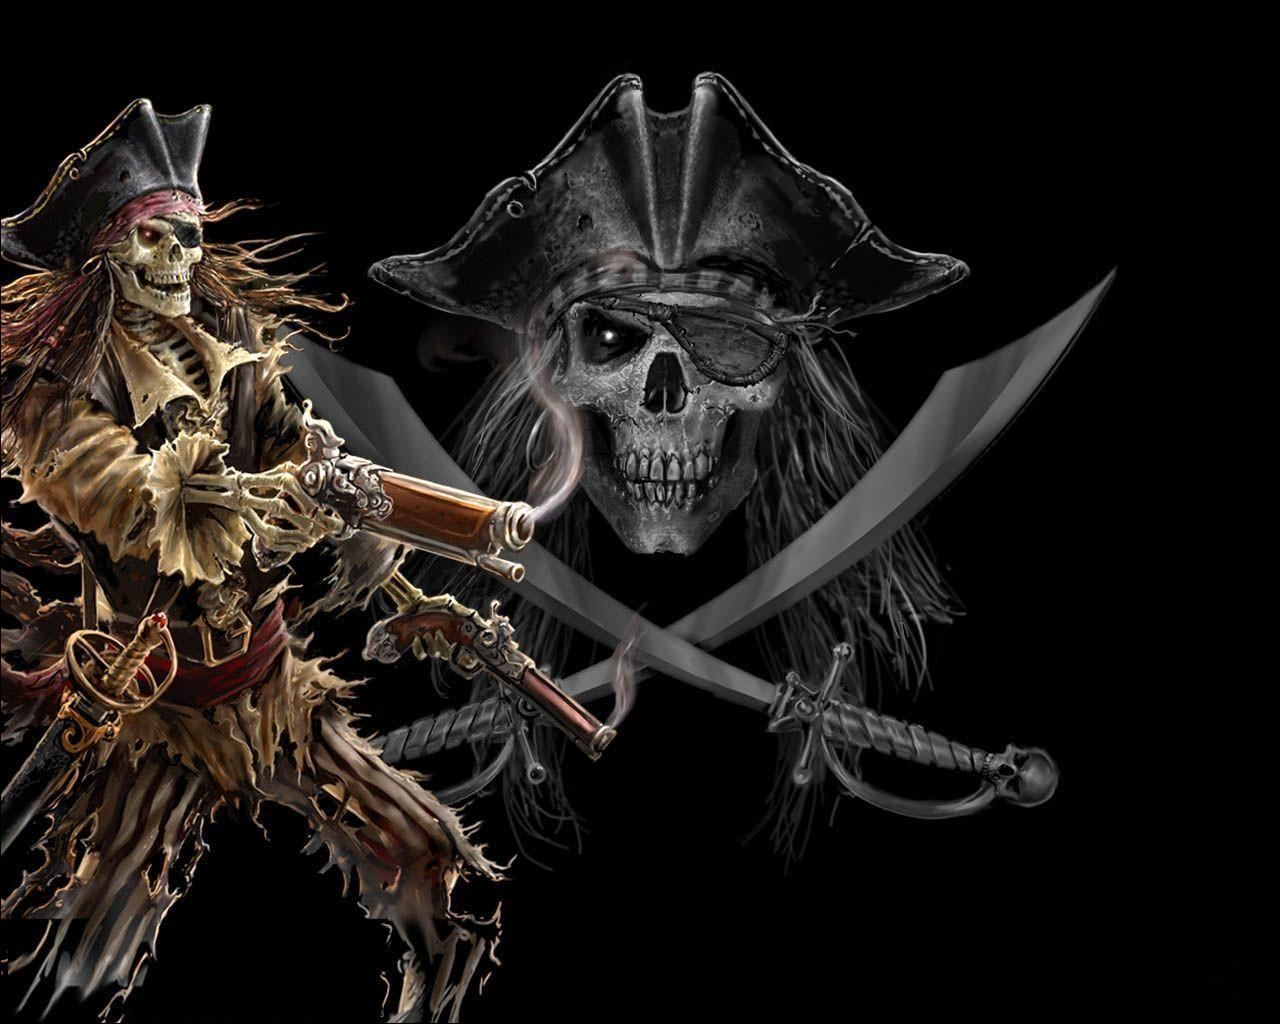 http://1.bp.blogspot.com/-oh7qzjaj5q8/TqPPTOxQYBI/AAAAAAAACoE/V5fkf3wyAqM/s1600/Skull+_wallpapers_Dark_Skeleton_Pirate.jpg